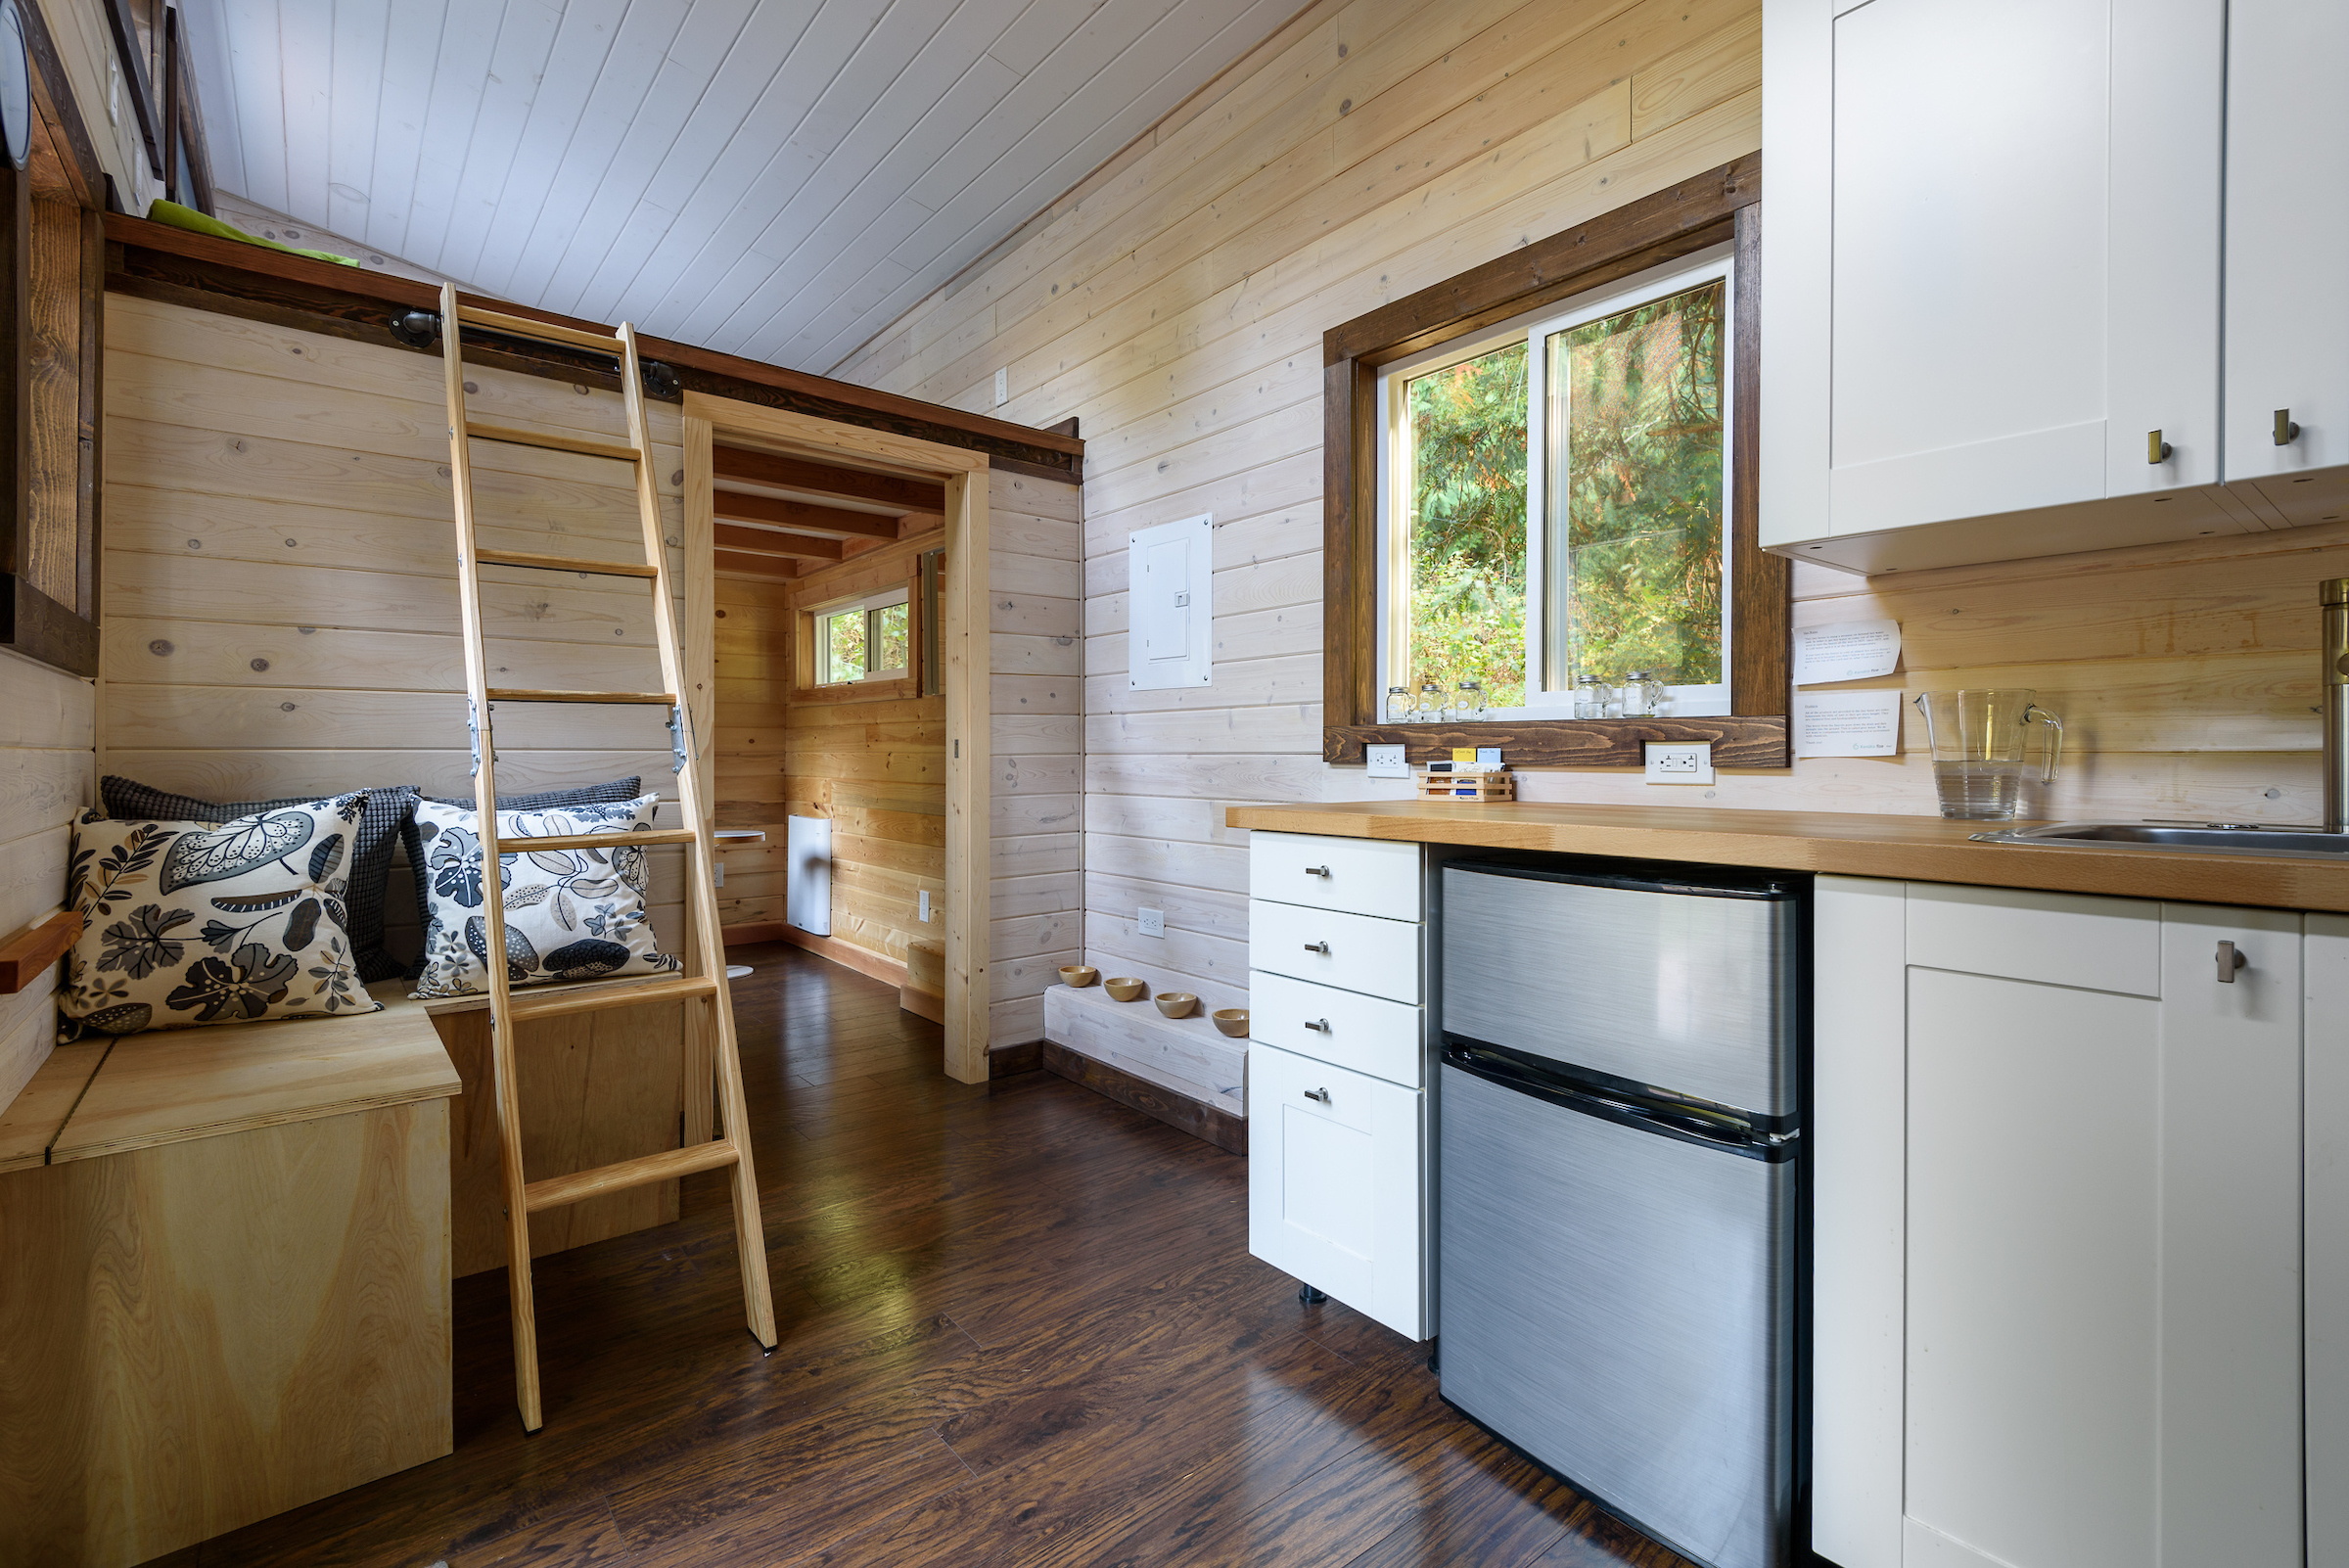 Interior design of a dining room and kitchen in a tiny rustic log cabin.